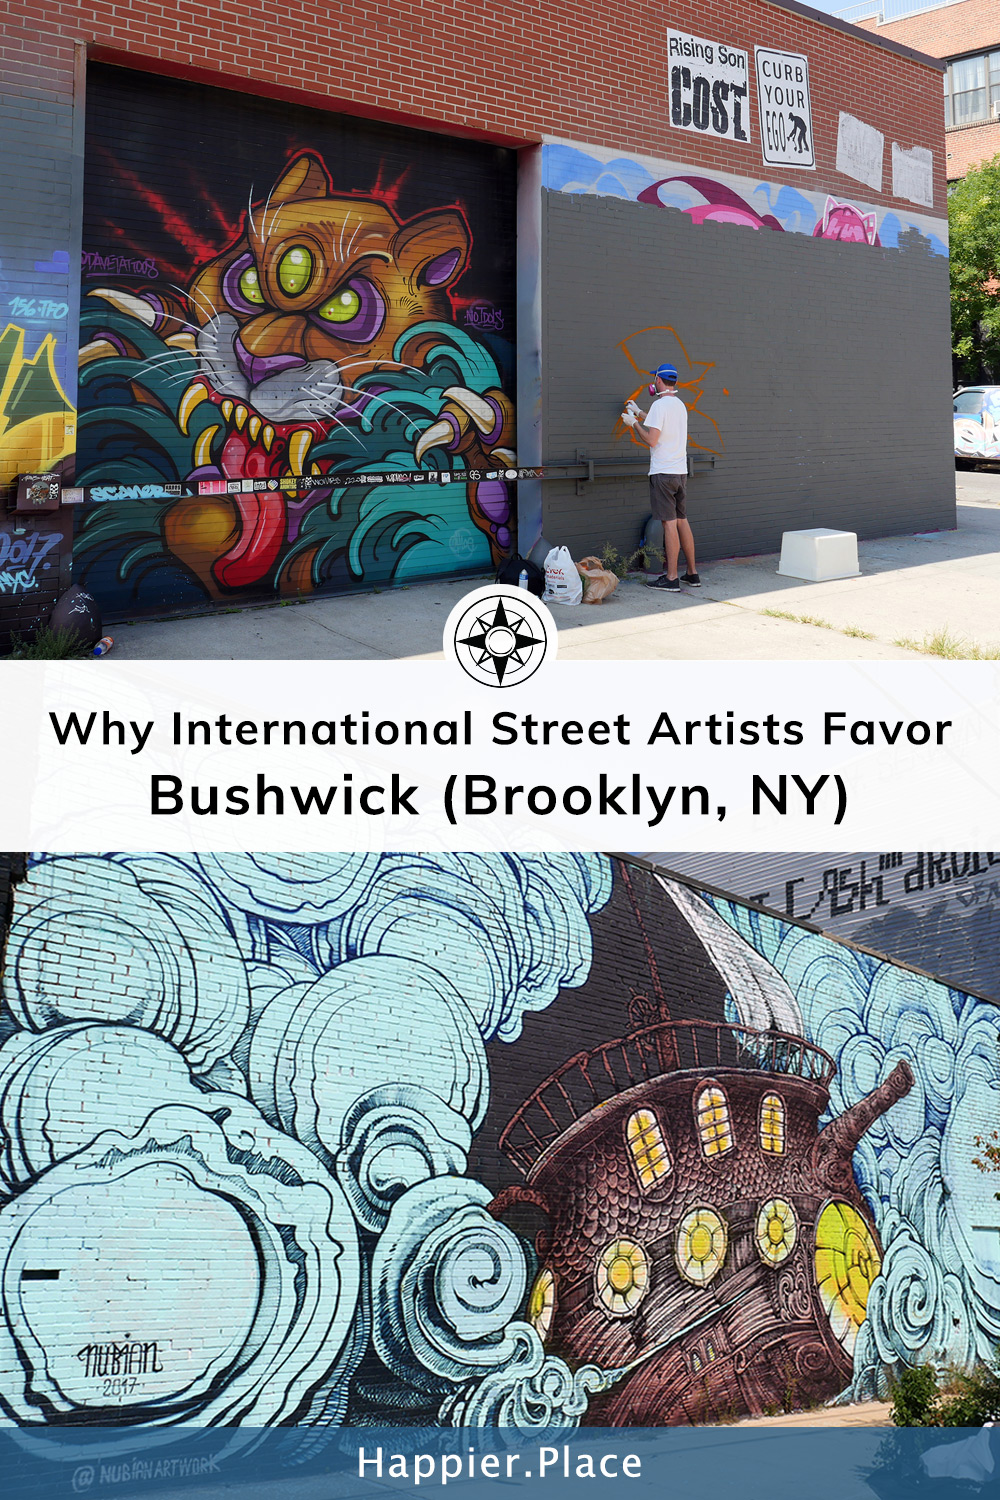 International Street Artists Favor Bushwick Brooklyn NY - Nubian Art ship tiger Australian graffiti